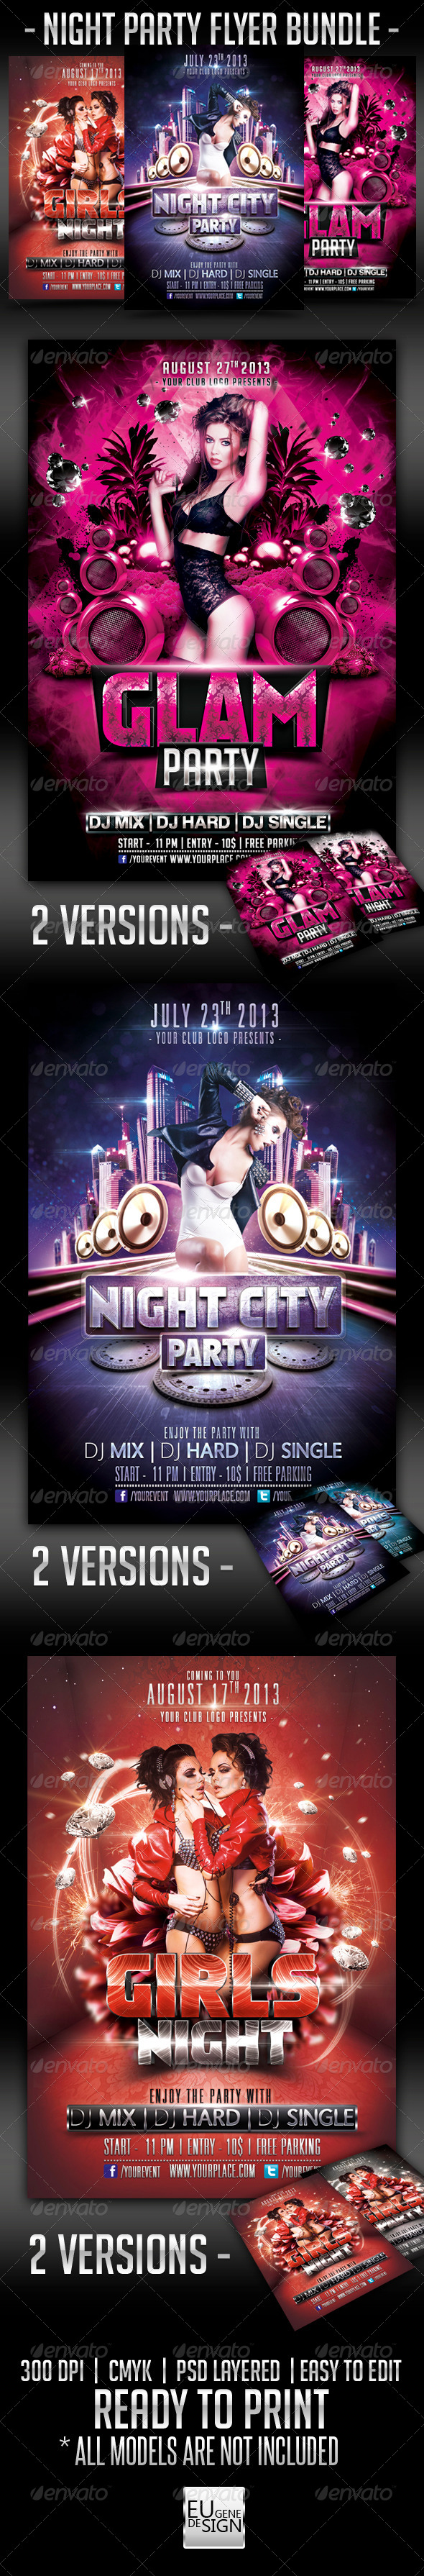 Night Party Flyer Bundle - Clubs & Parties Events